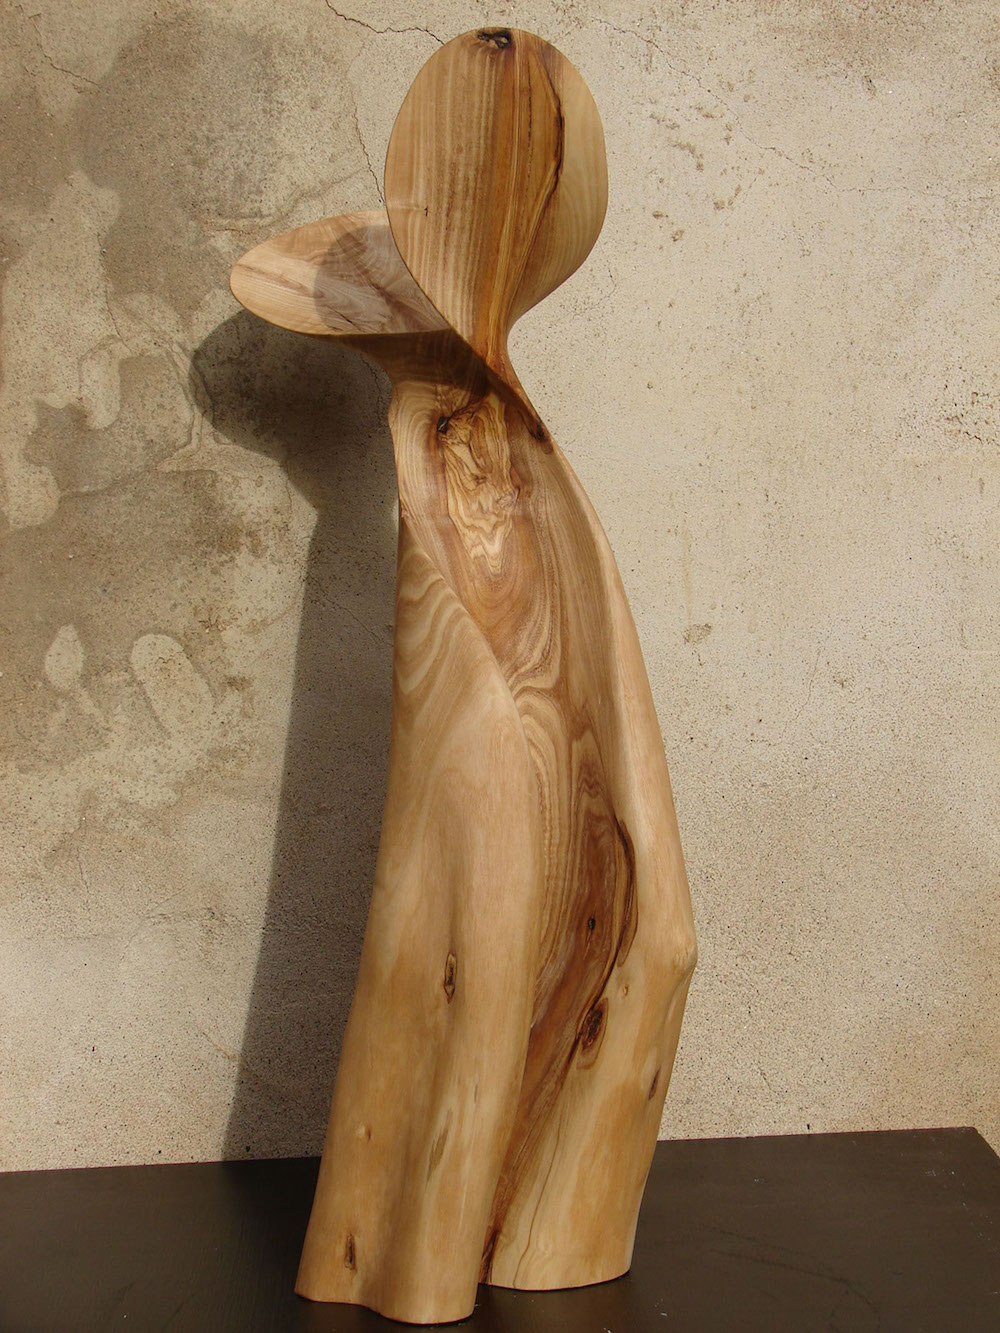 New Twisted Sculptures Carved from Pine Wood by Xavier Puente Vilardell